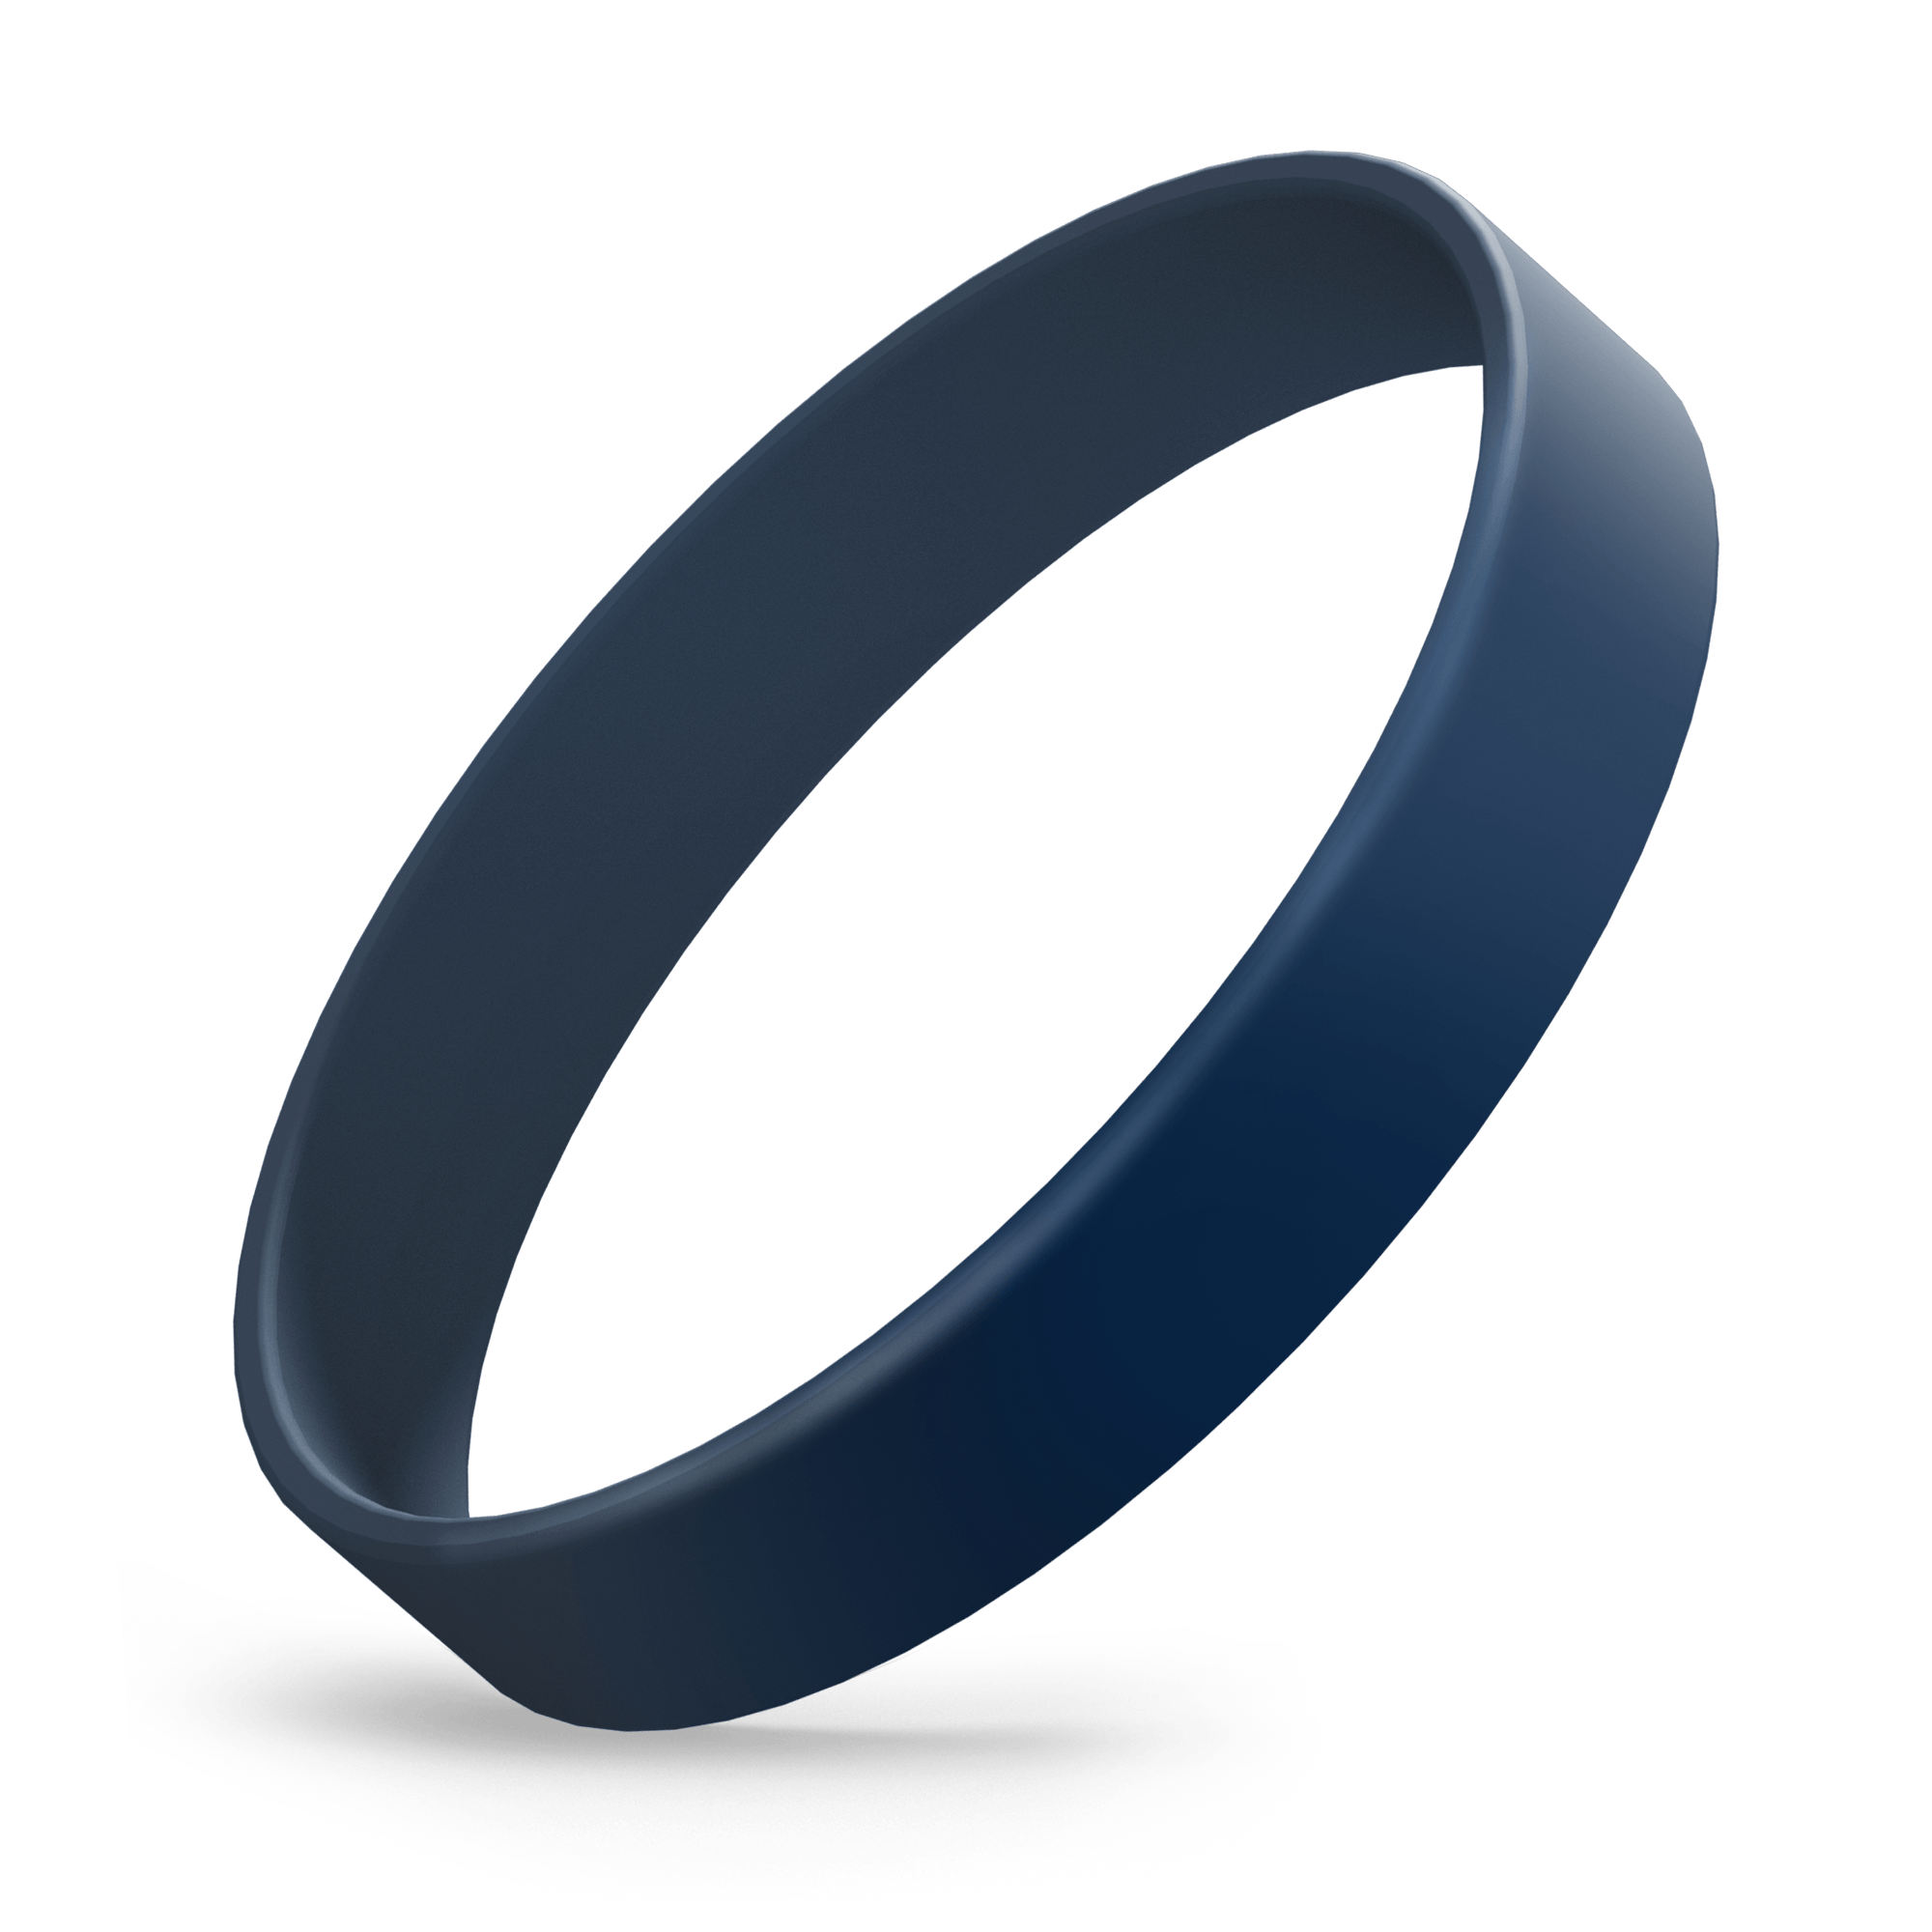 Custom Ink Injected (Navy Blue) Silicone Wristbands - Rubber Bracelets